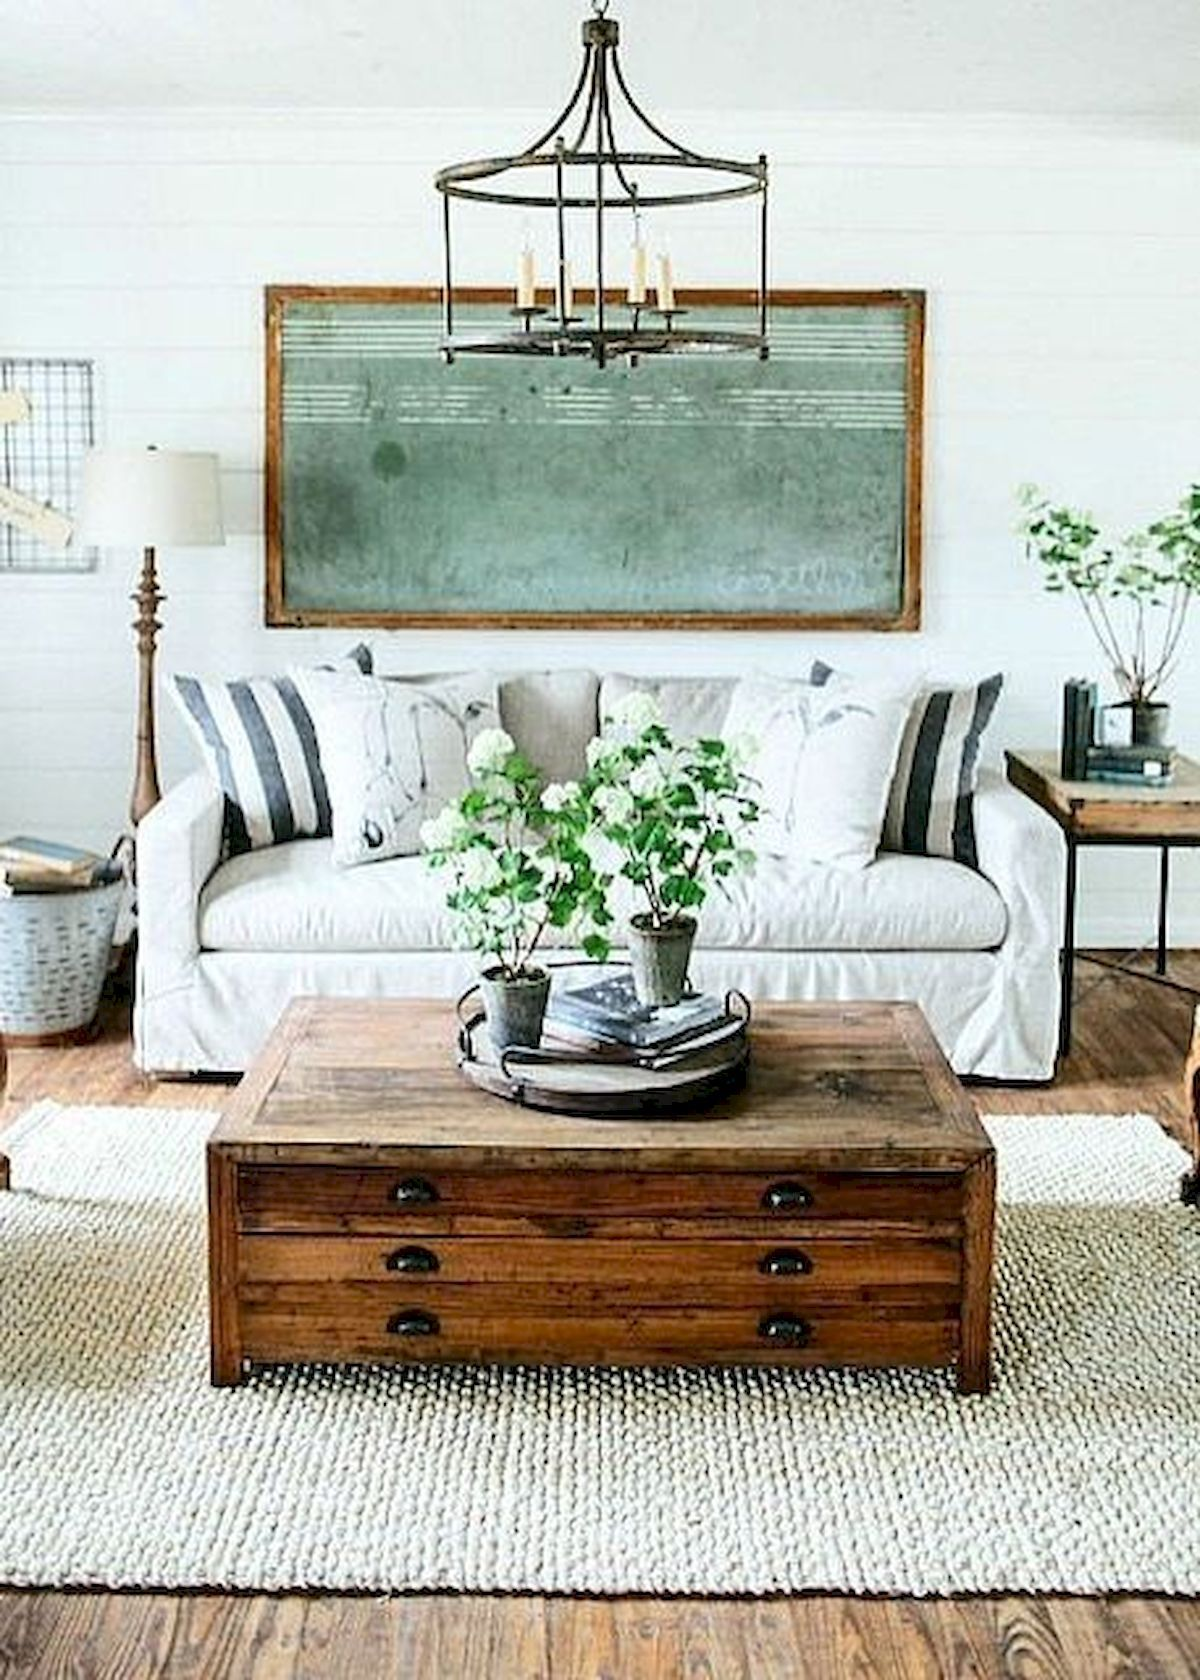 Old Coffin as the Table